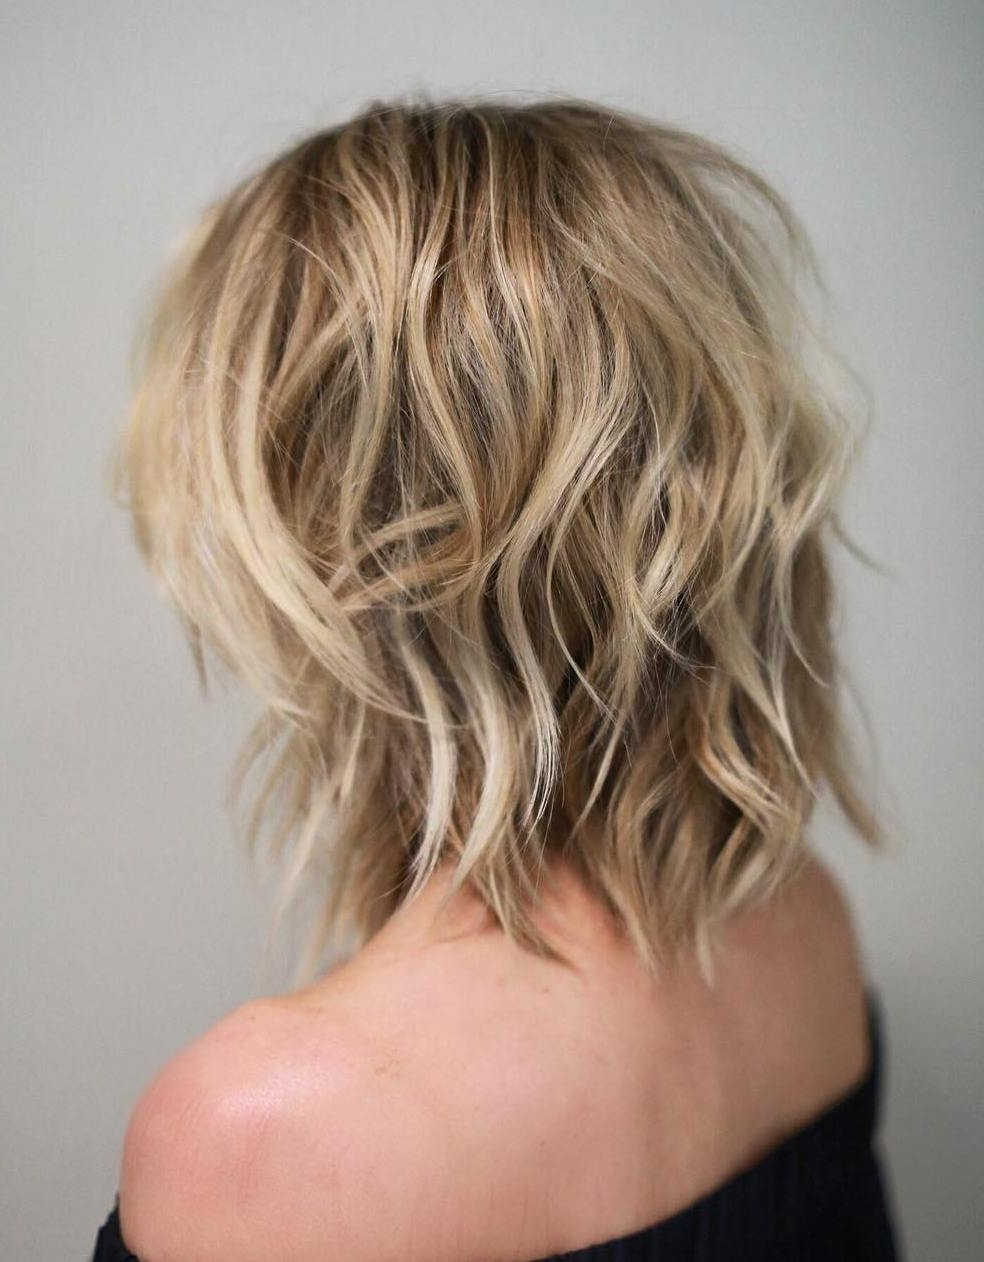 50 Best Variations Of A Medium Shag Haircut For Your Distinctive Style With 2018 Shaggy Messy Hairstyles (View 3 of 15)